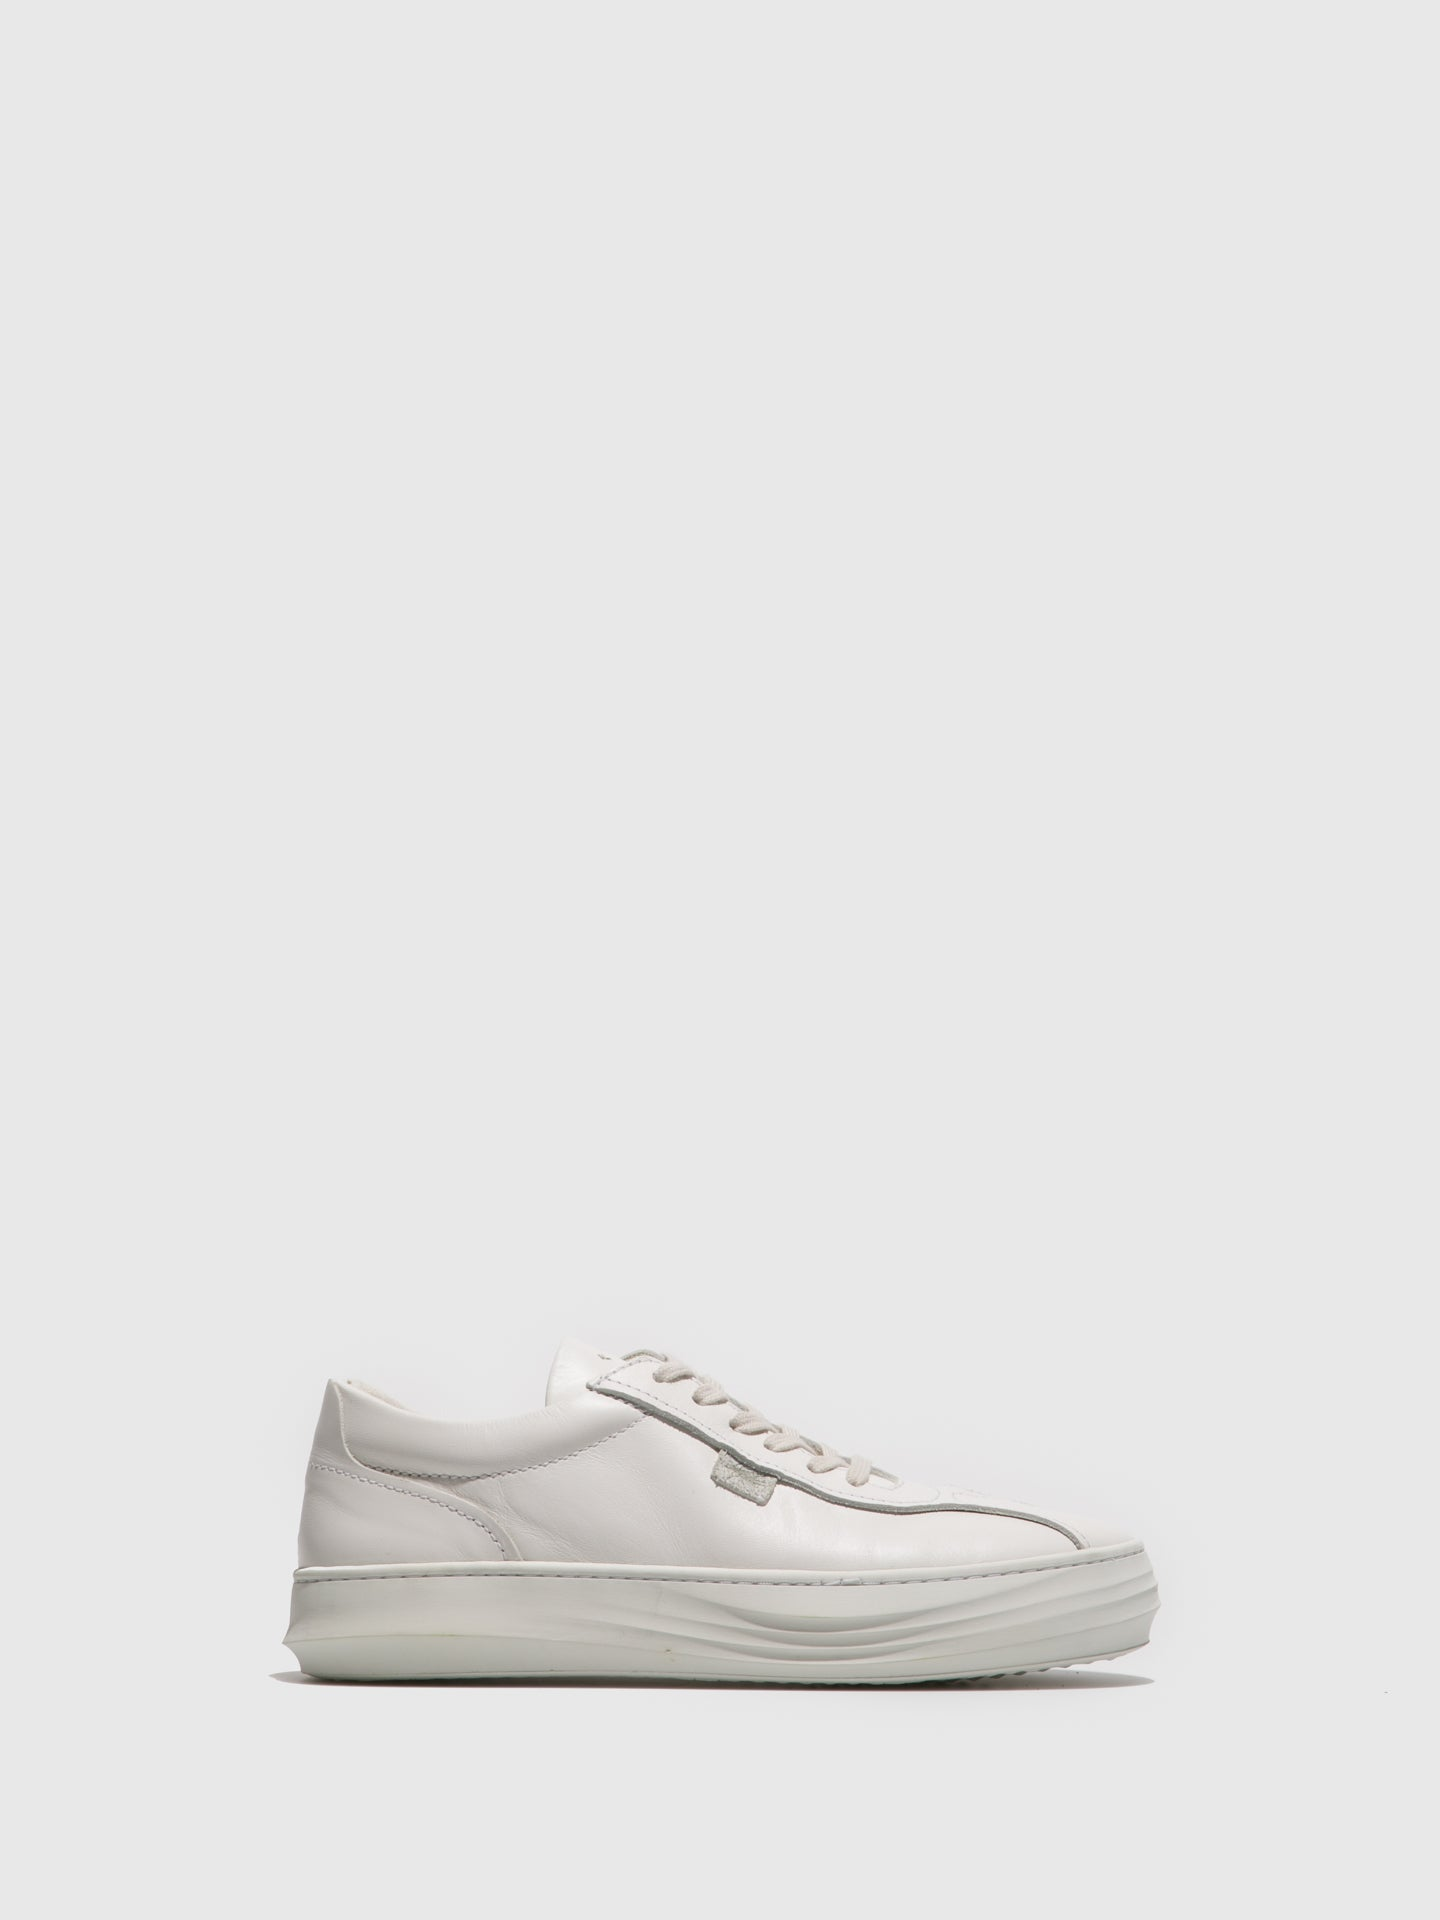 Fly London White Lace-up Trainers